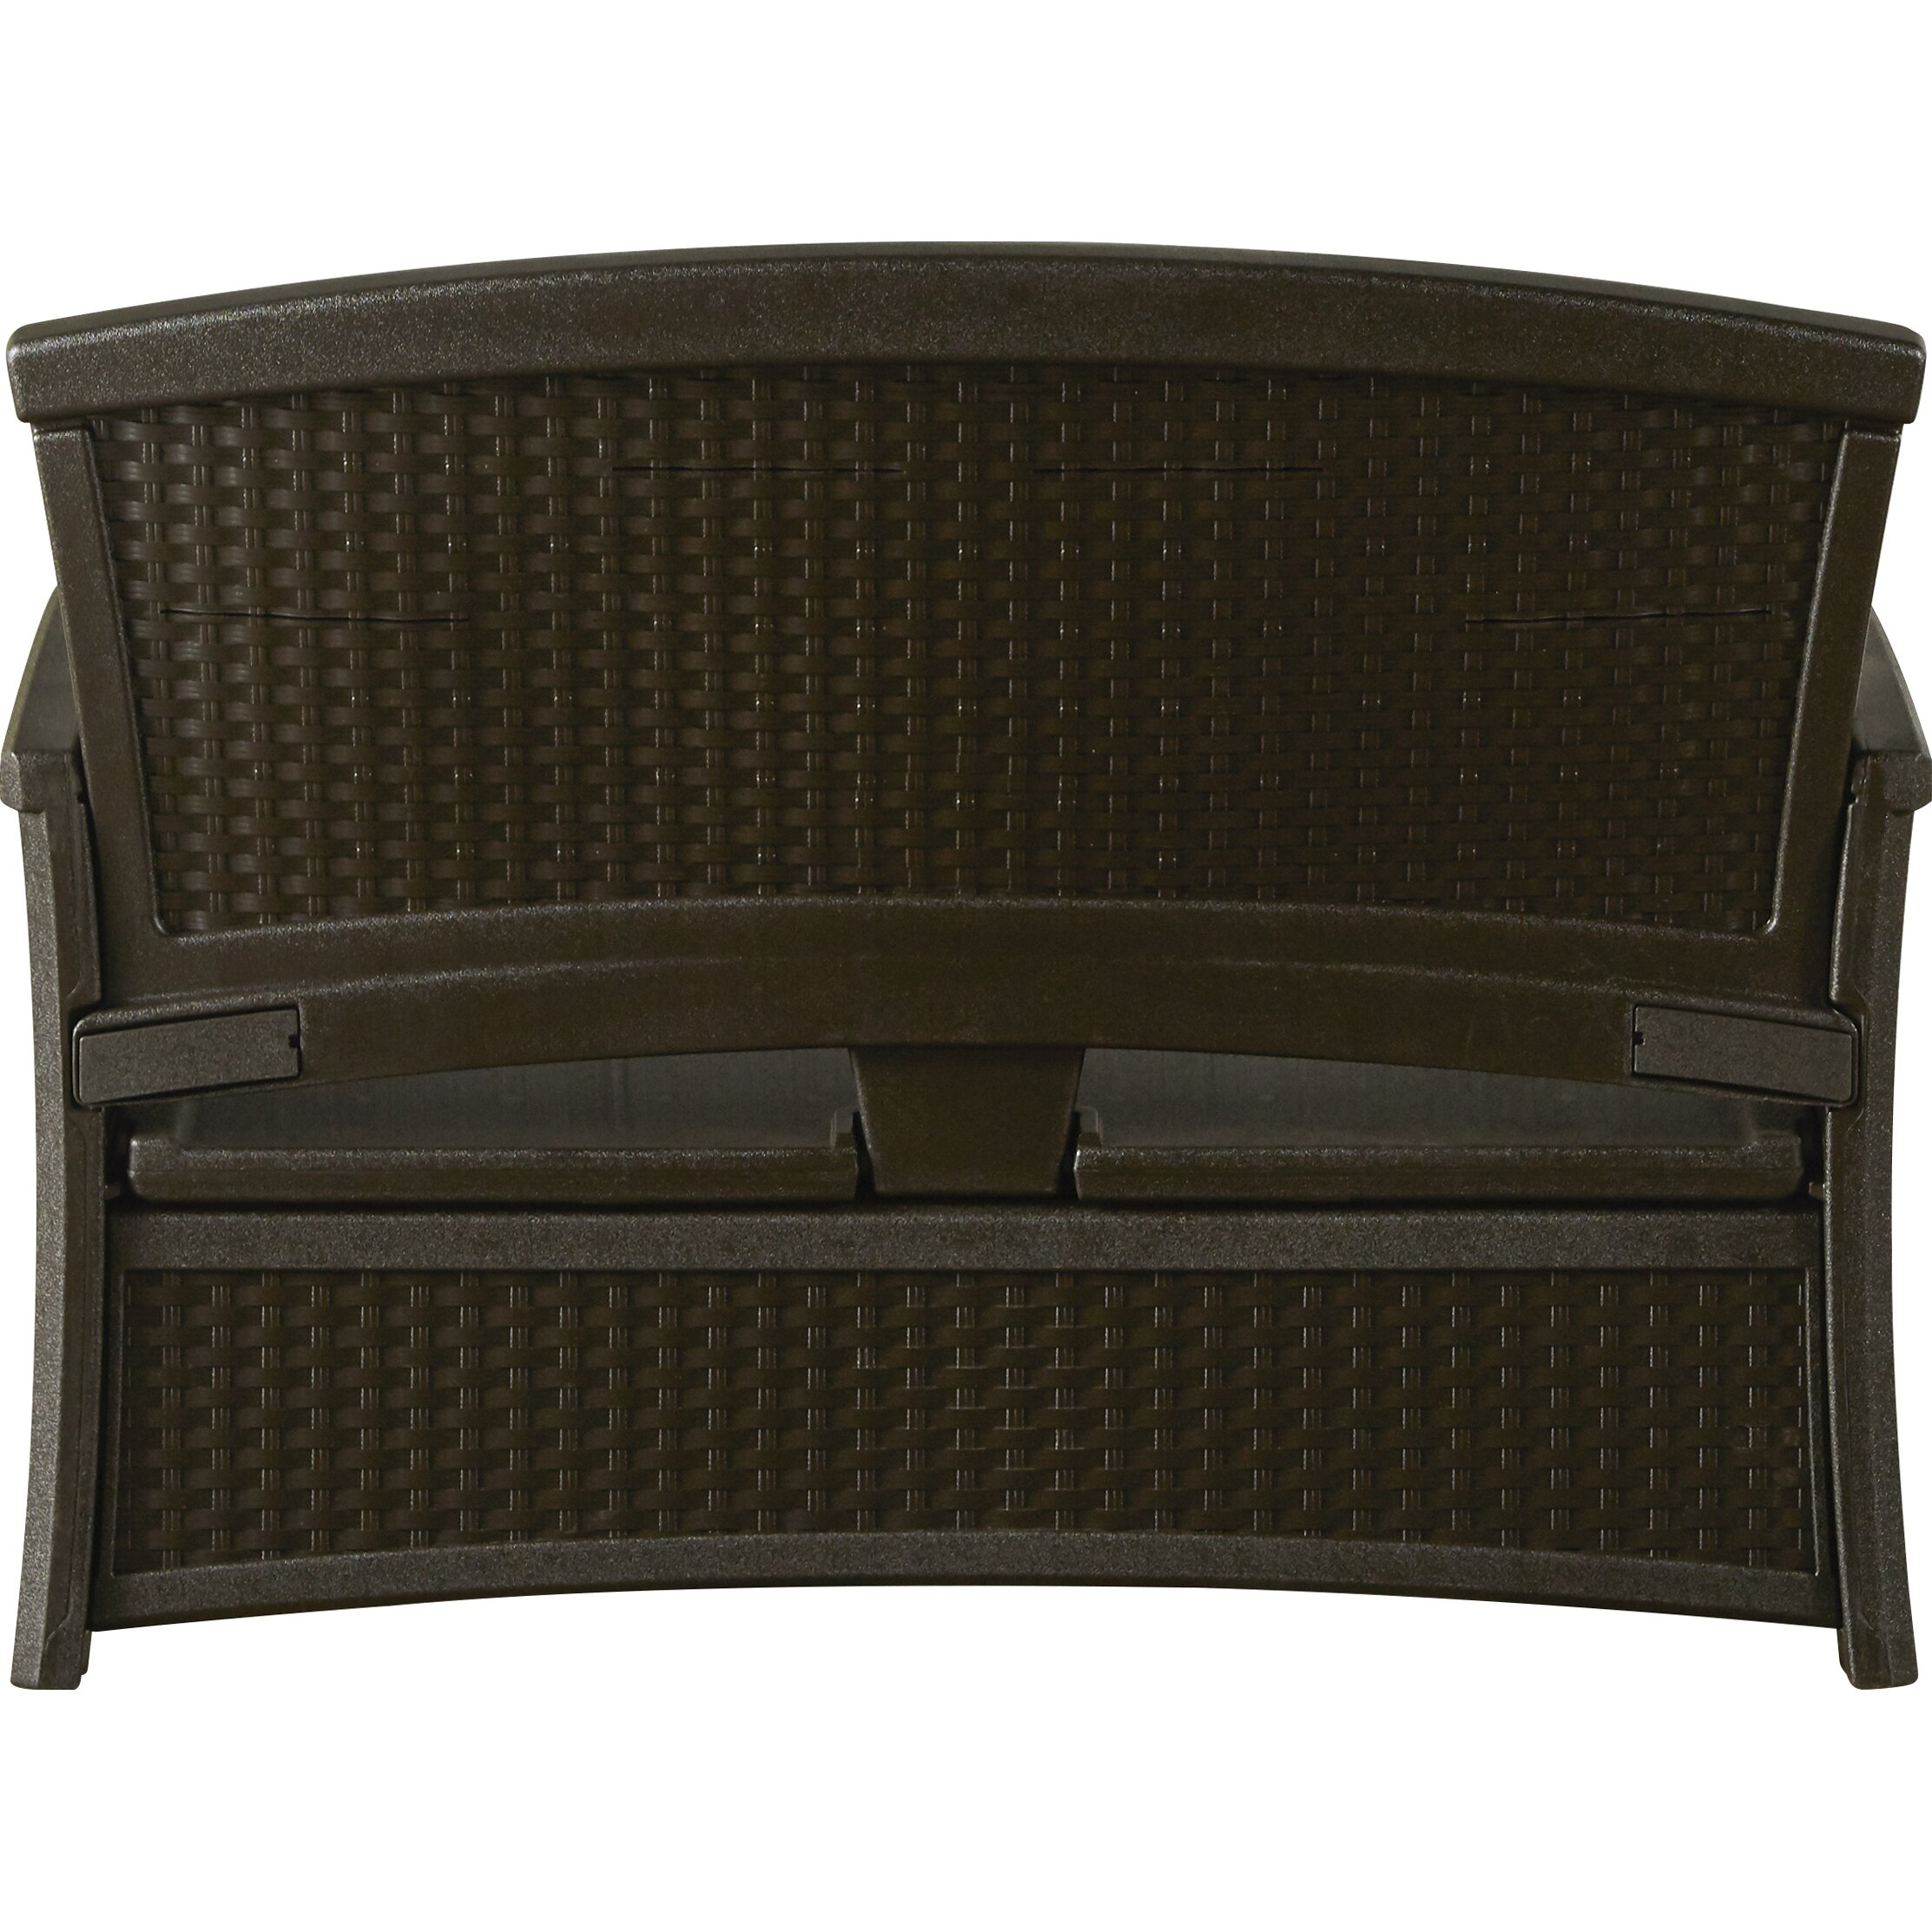 Breakwater Bay Salisbury Wicker Storage Bench Reviews Wayfair